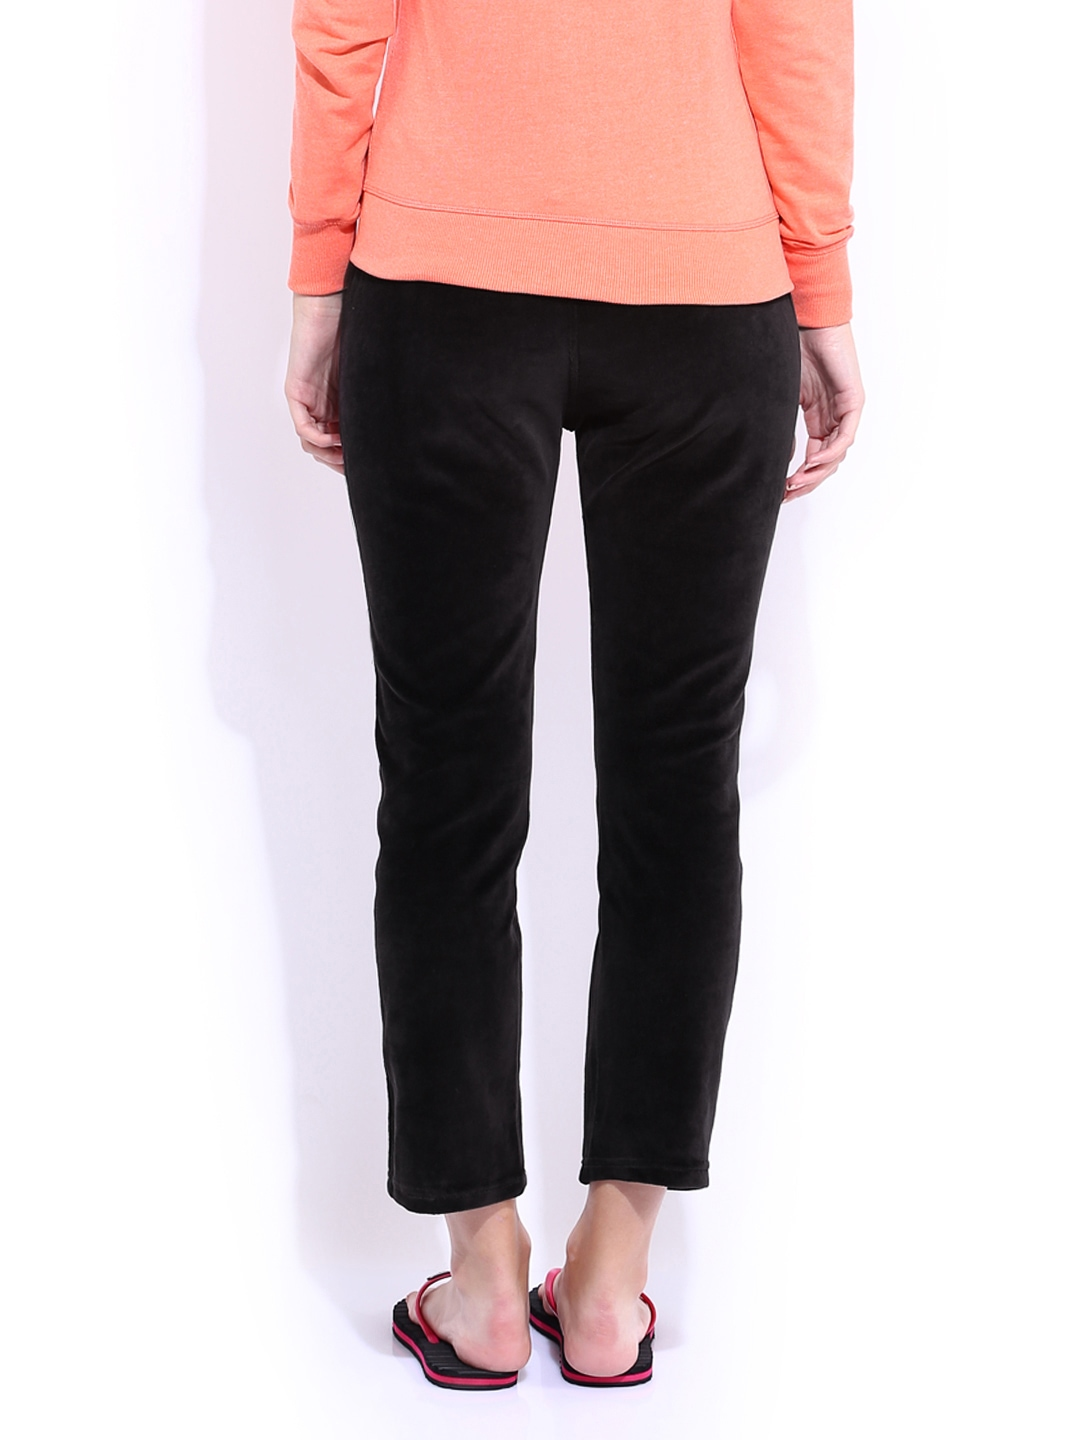 Luxury  Clothing Women Clothing Lounge Pants Gossip By Dressberry Lounge Pants